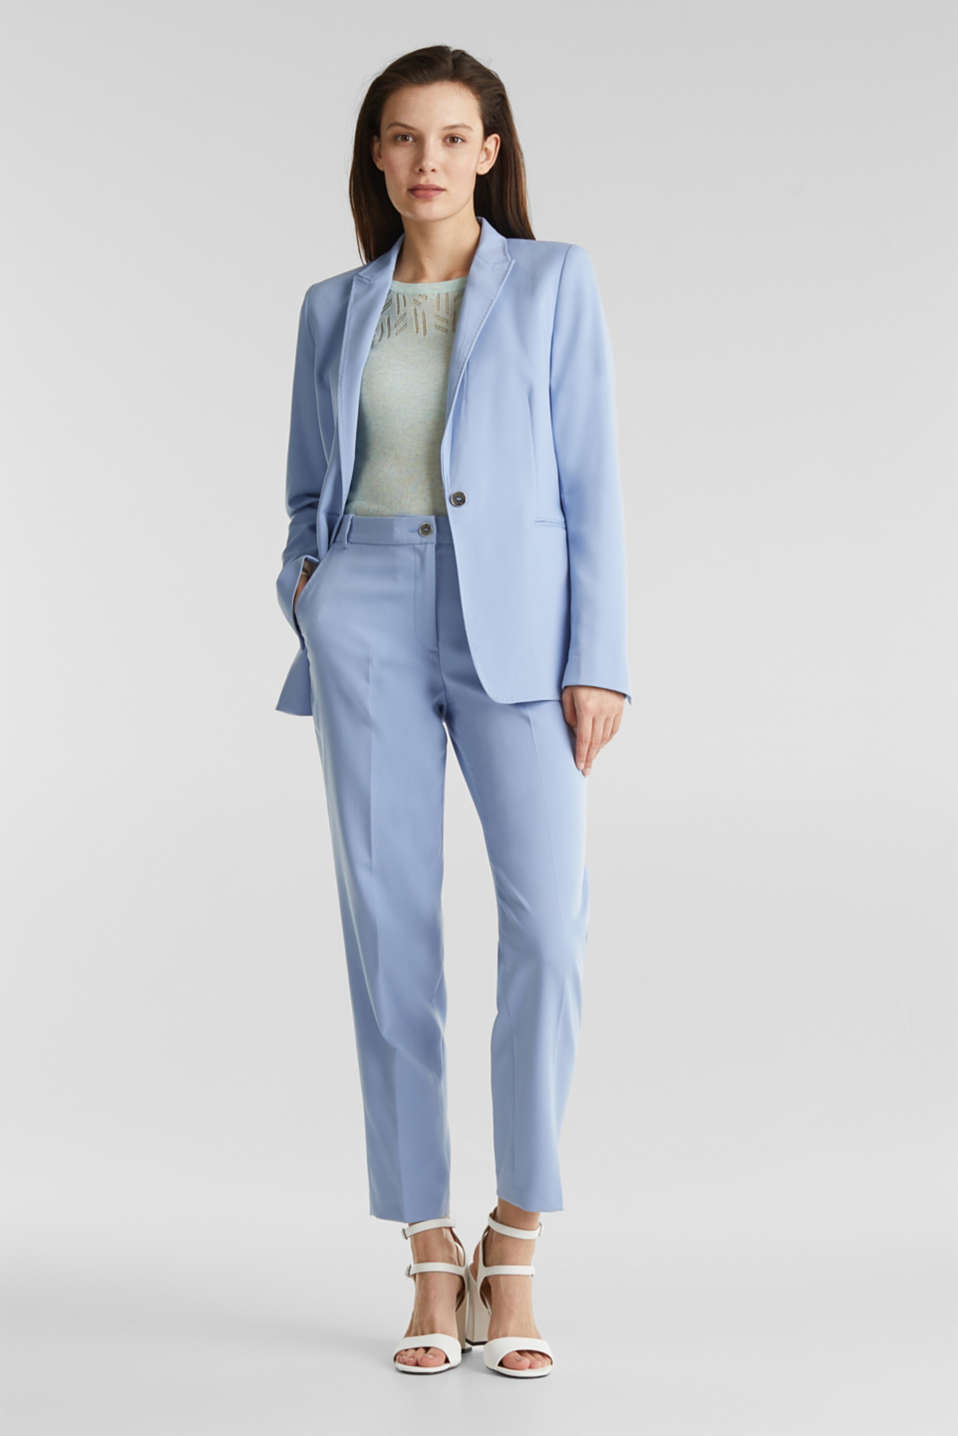 SPRING TWILL Mix + Match stretch blazer, LIGHT BLUE, detail image number 1